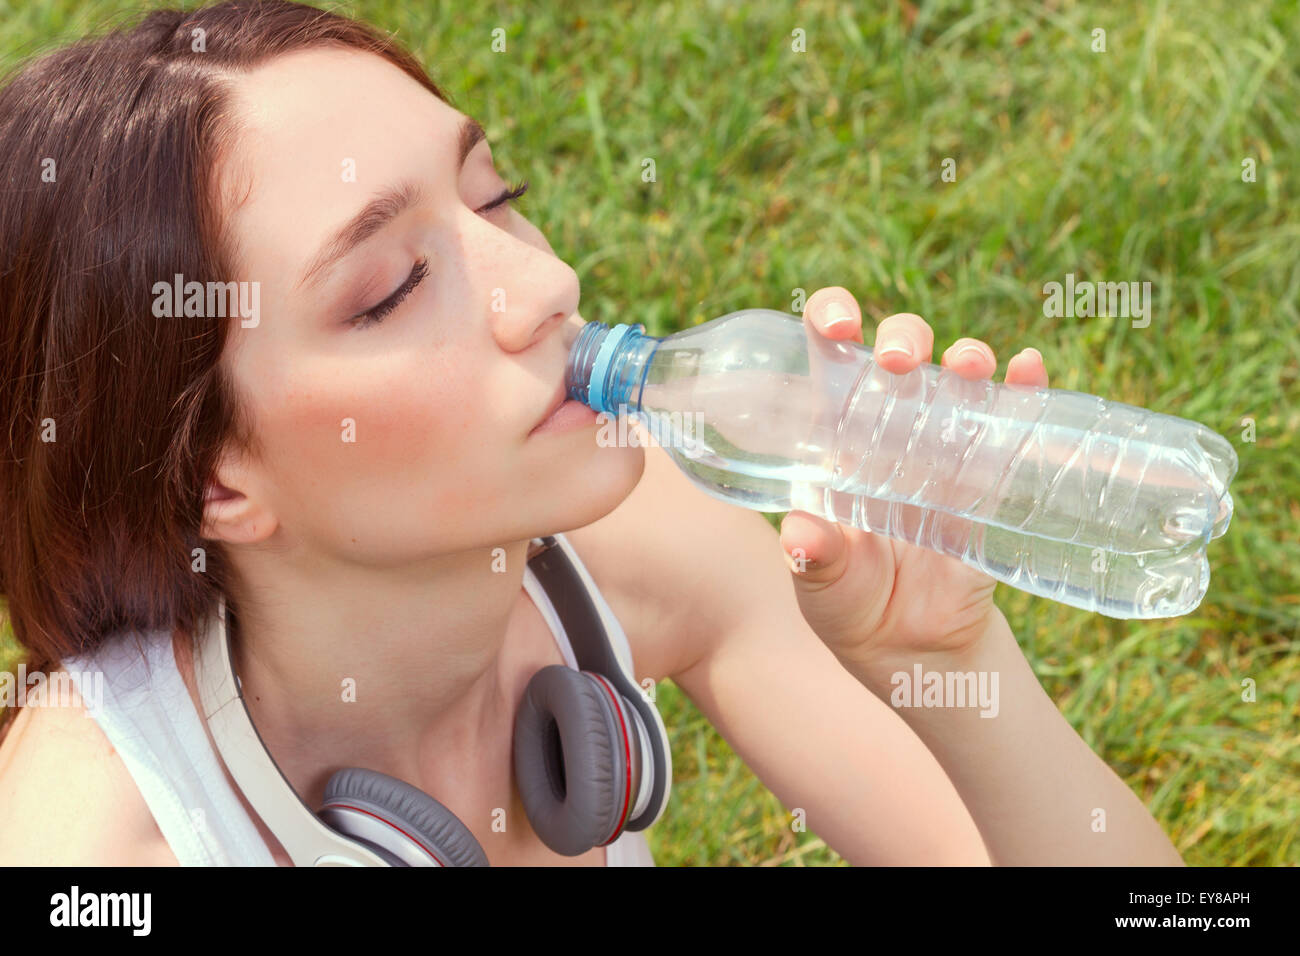 Nice young girl drinking water - Stock Image